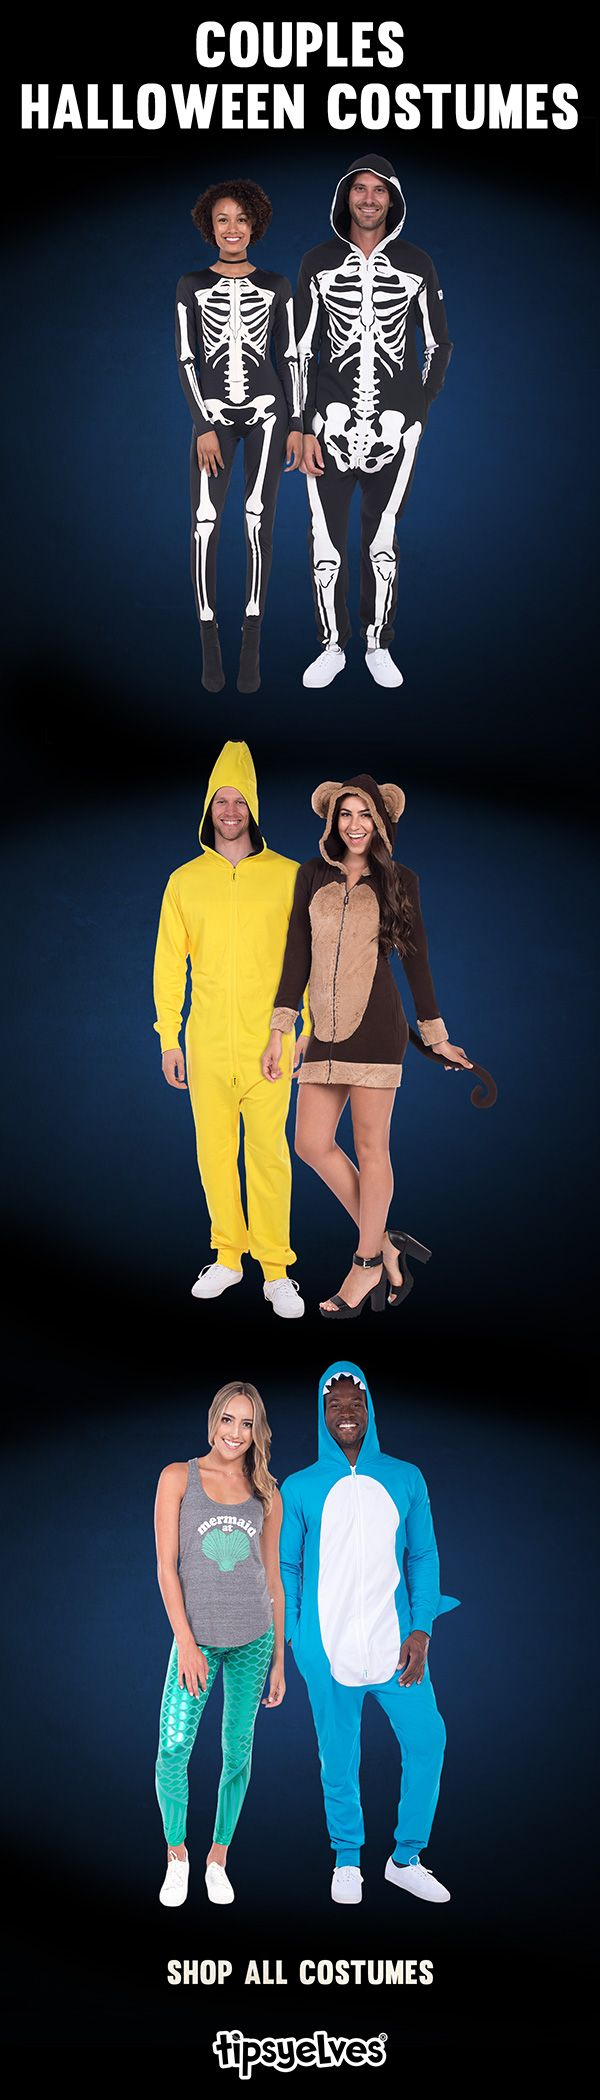 Couples Halloween costumes can be a hassle. You want style; he wants comfort. With Tipsy Elves couples halloween costumes, you'll both find what you're looking for. Say goodbye to dollar store couples Halloween costumes and hello to T ipsy Elves apparel. High-quality, stylish, and above all, FUN! Shop over 20 couple's Halloween costumes!